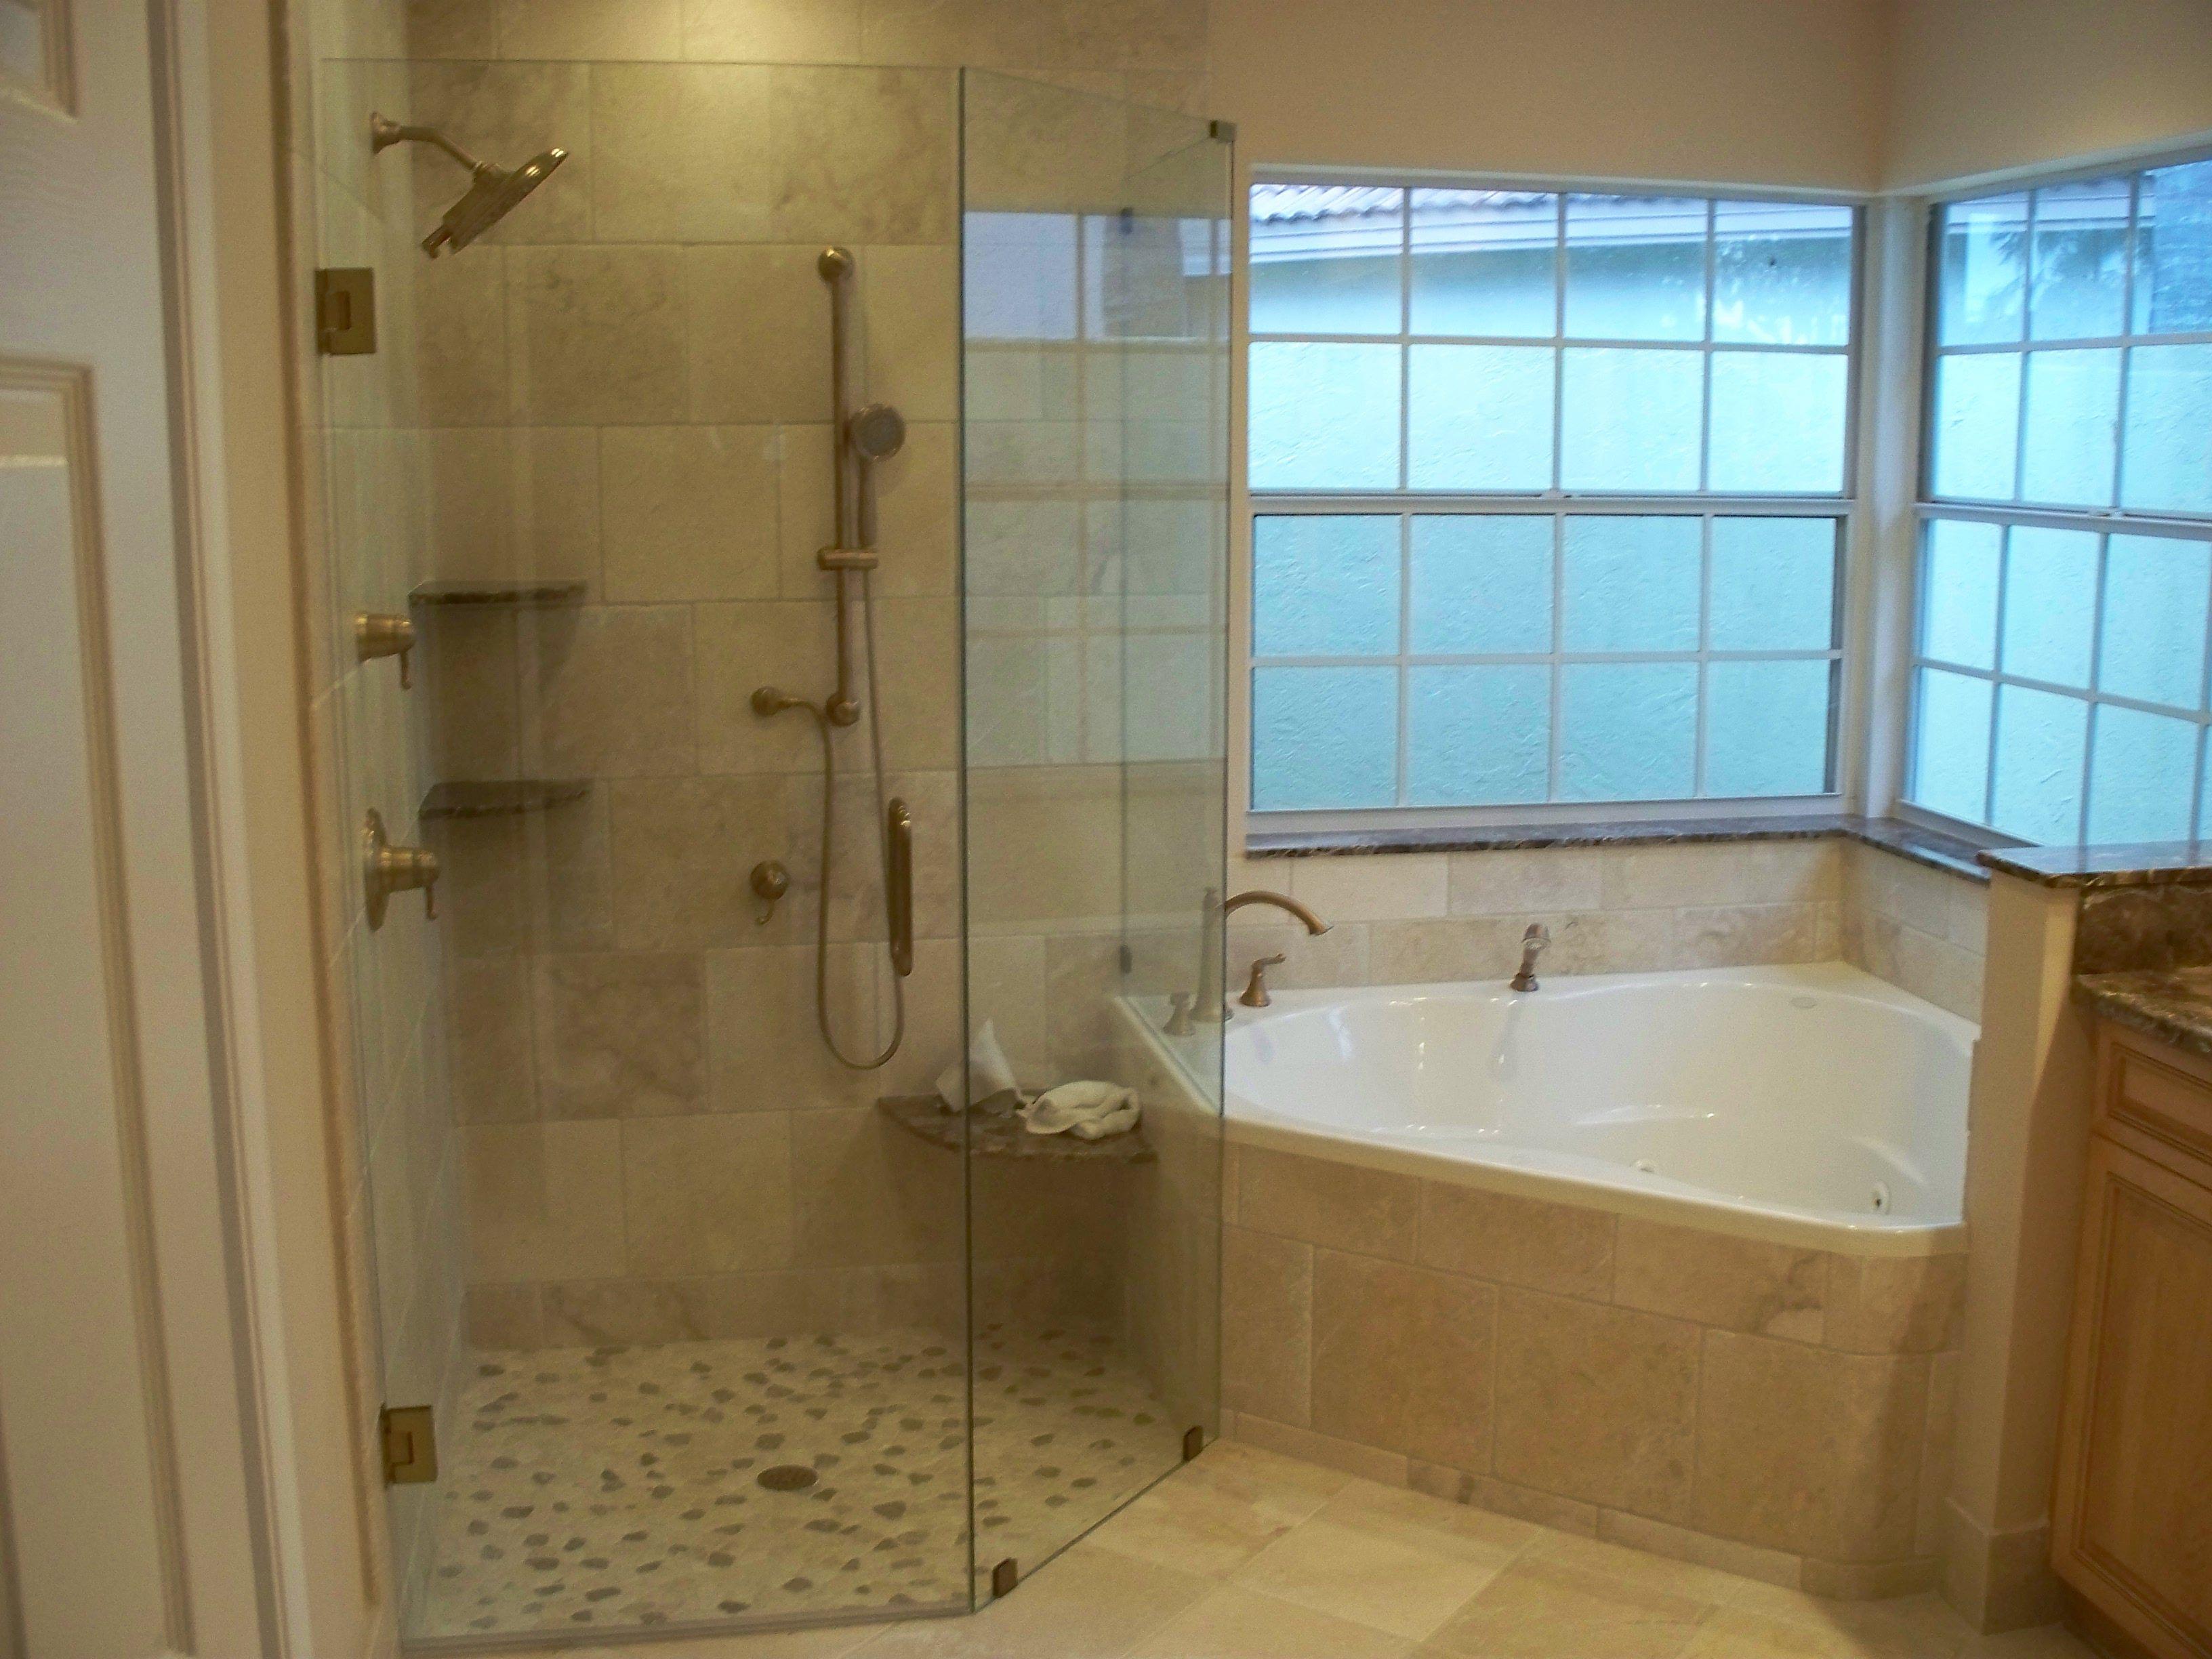 Bathtub Showers Corner Tub W Larger Walk In Shower Do Not Like The Wall